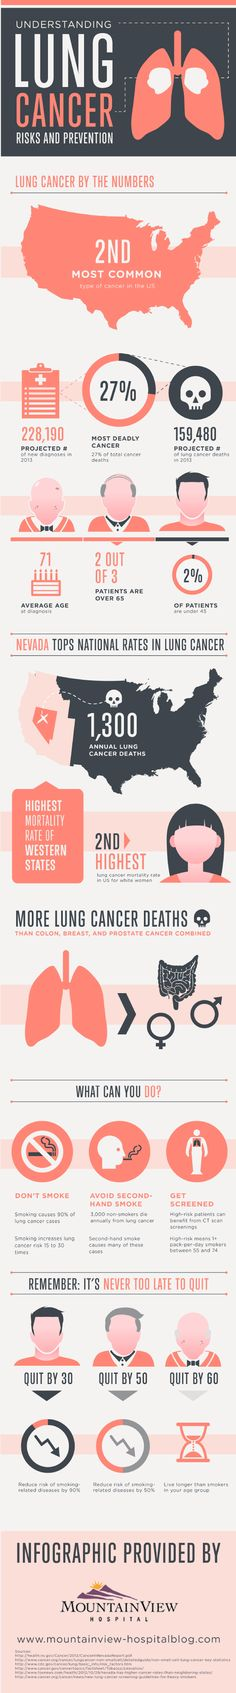 Infographic: Lung Cancer Risks and Prevention